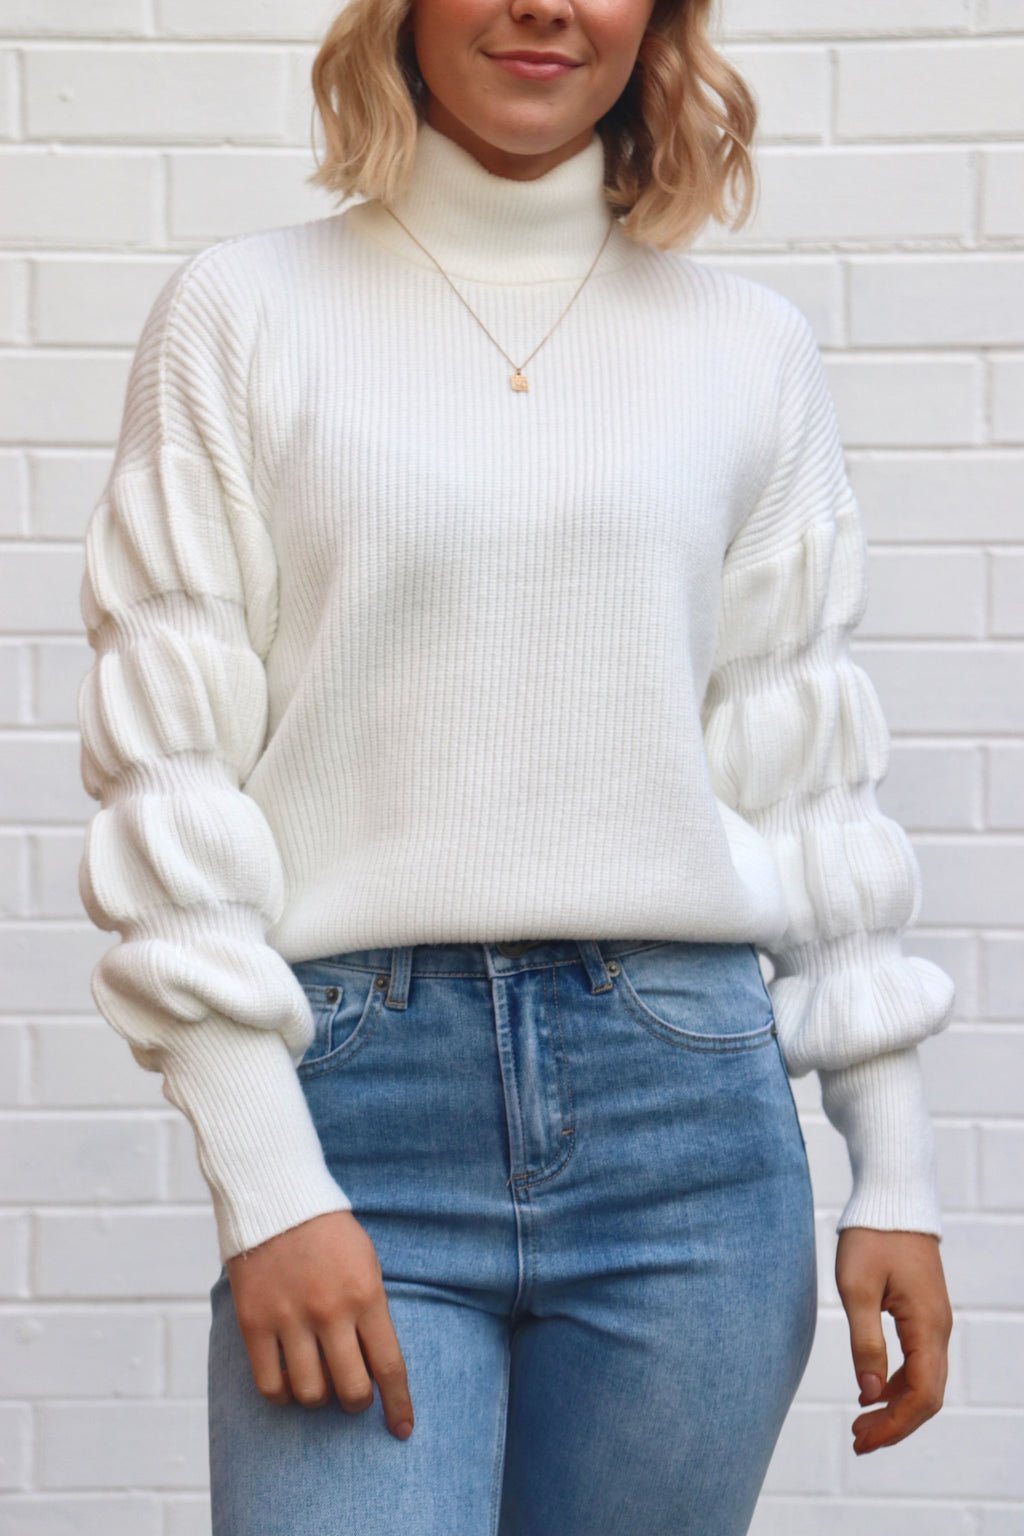 Posey Knit - White